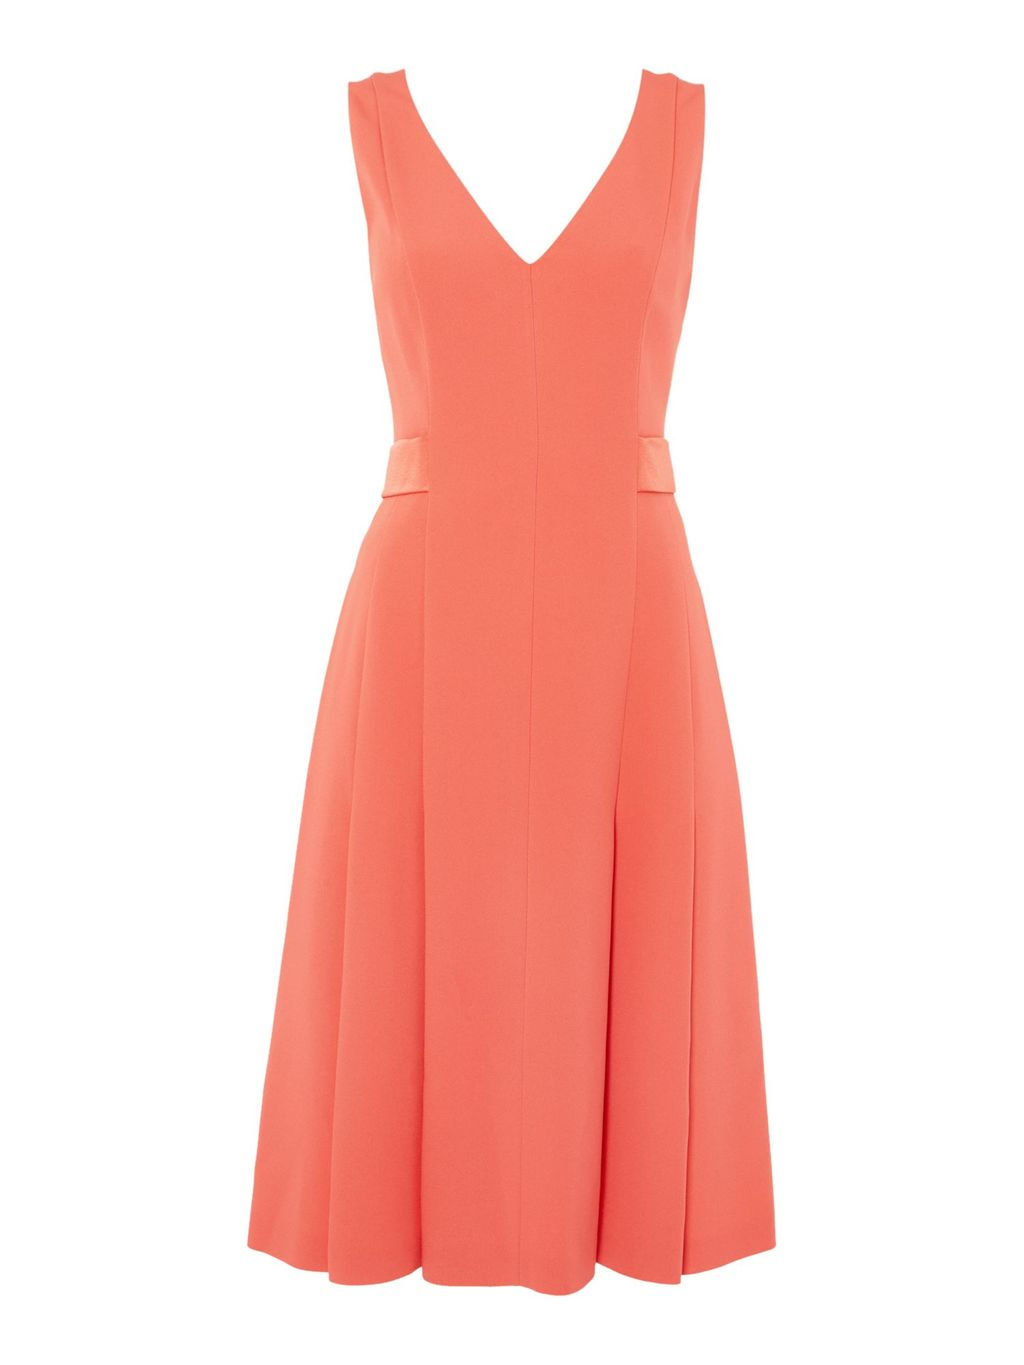 Dibella V Neck Crepe Fit & Flare Dress, Pink - neckline: v-neck; pattern: plain; sleeve style: sleeveless; predominant colour: coral; occasions: evening; length: on the knee; fit: fitted at waist & bust; style: fit & flare; sleeve length: sleeveless; texture group: crepes; pattern type: fabric; fibres: viscose/rayon - mix; season: s/s 2016; wardrobe: event